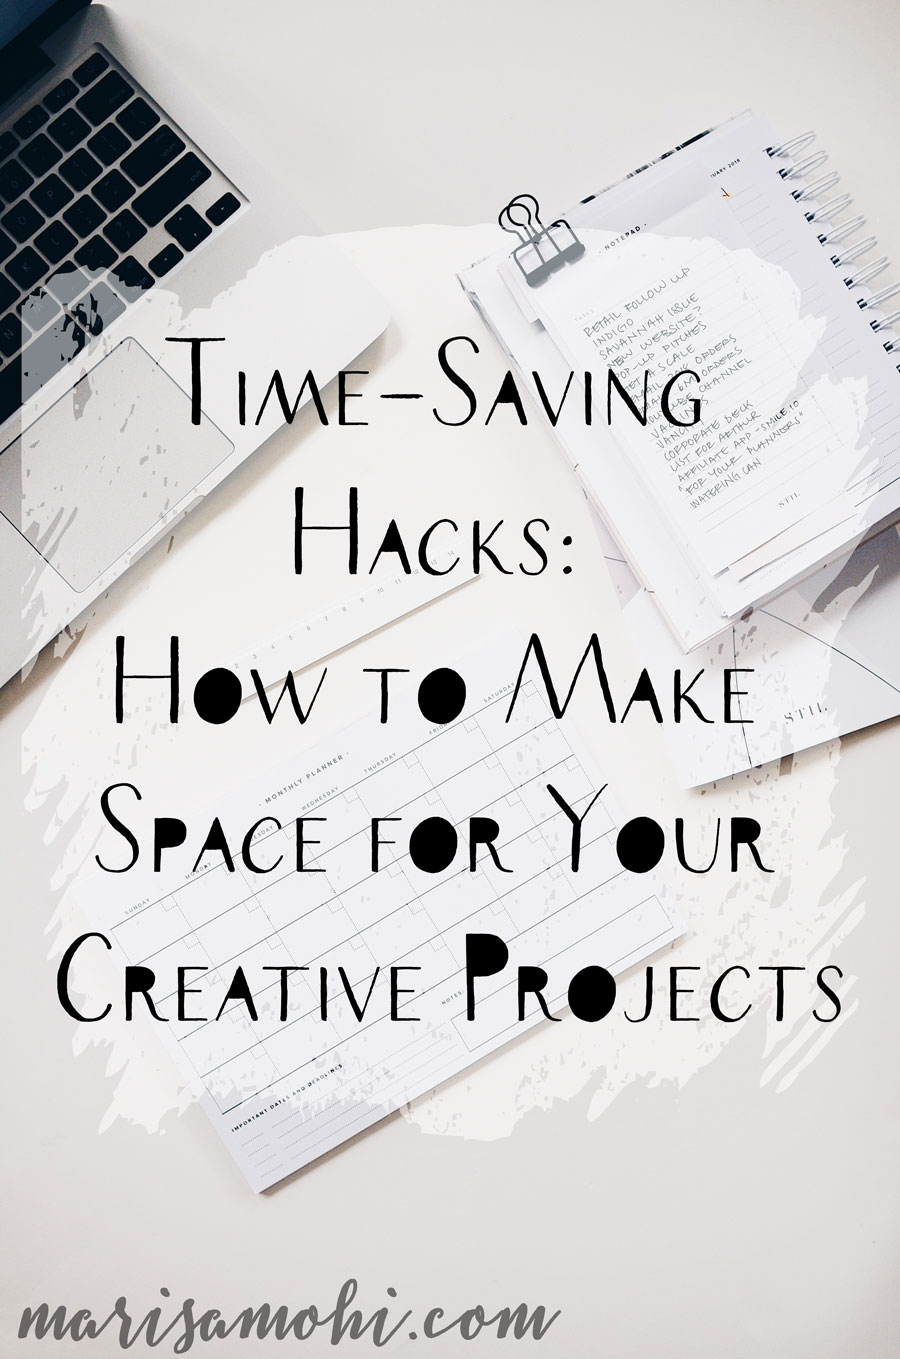 Time-Saving Hacks